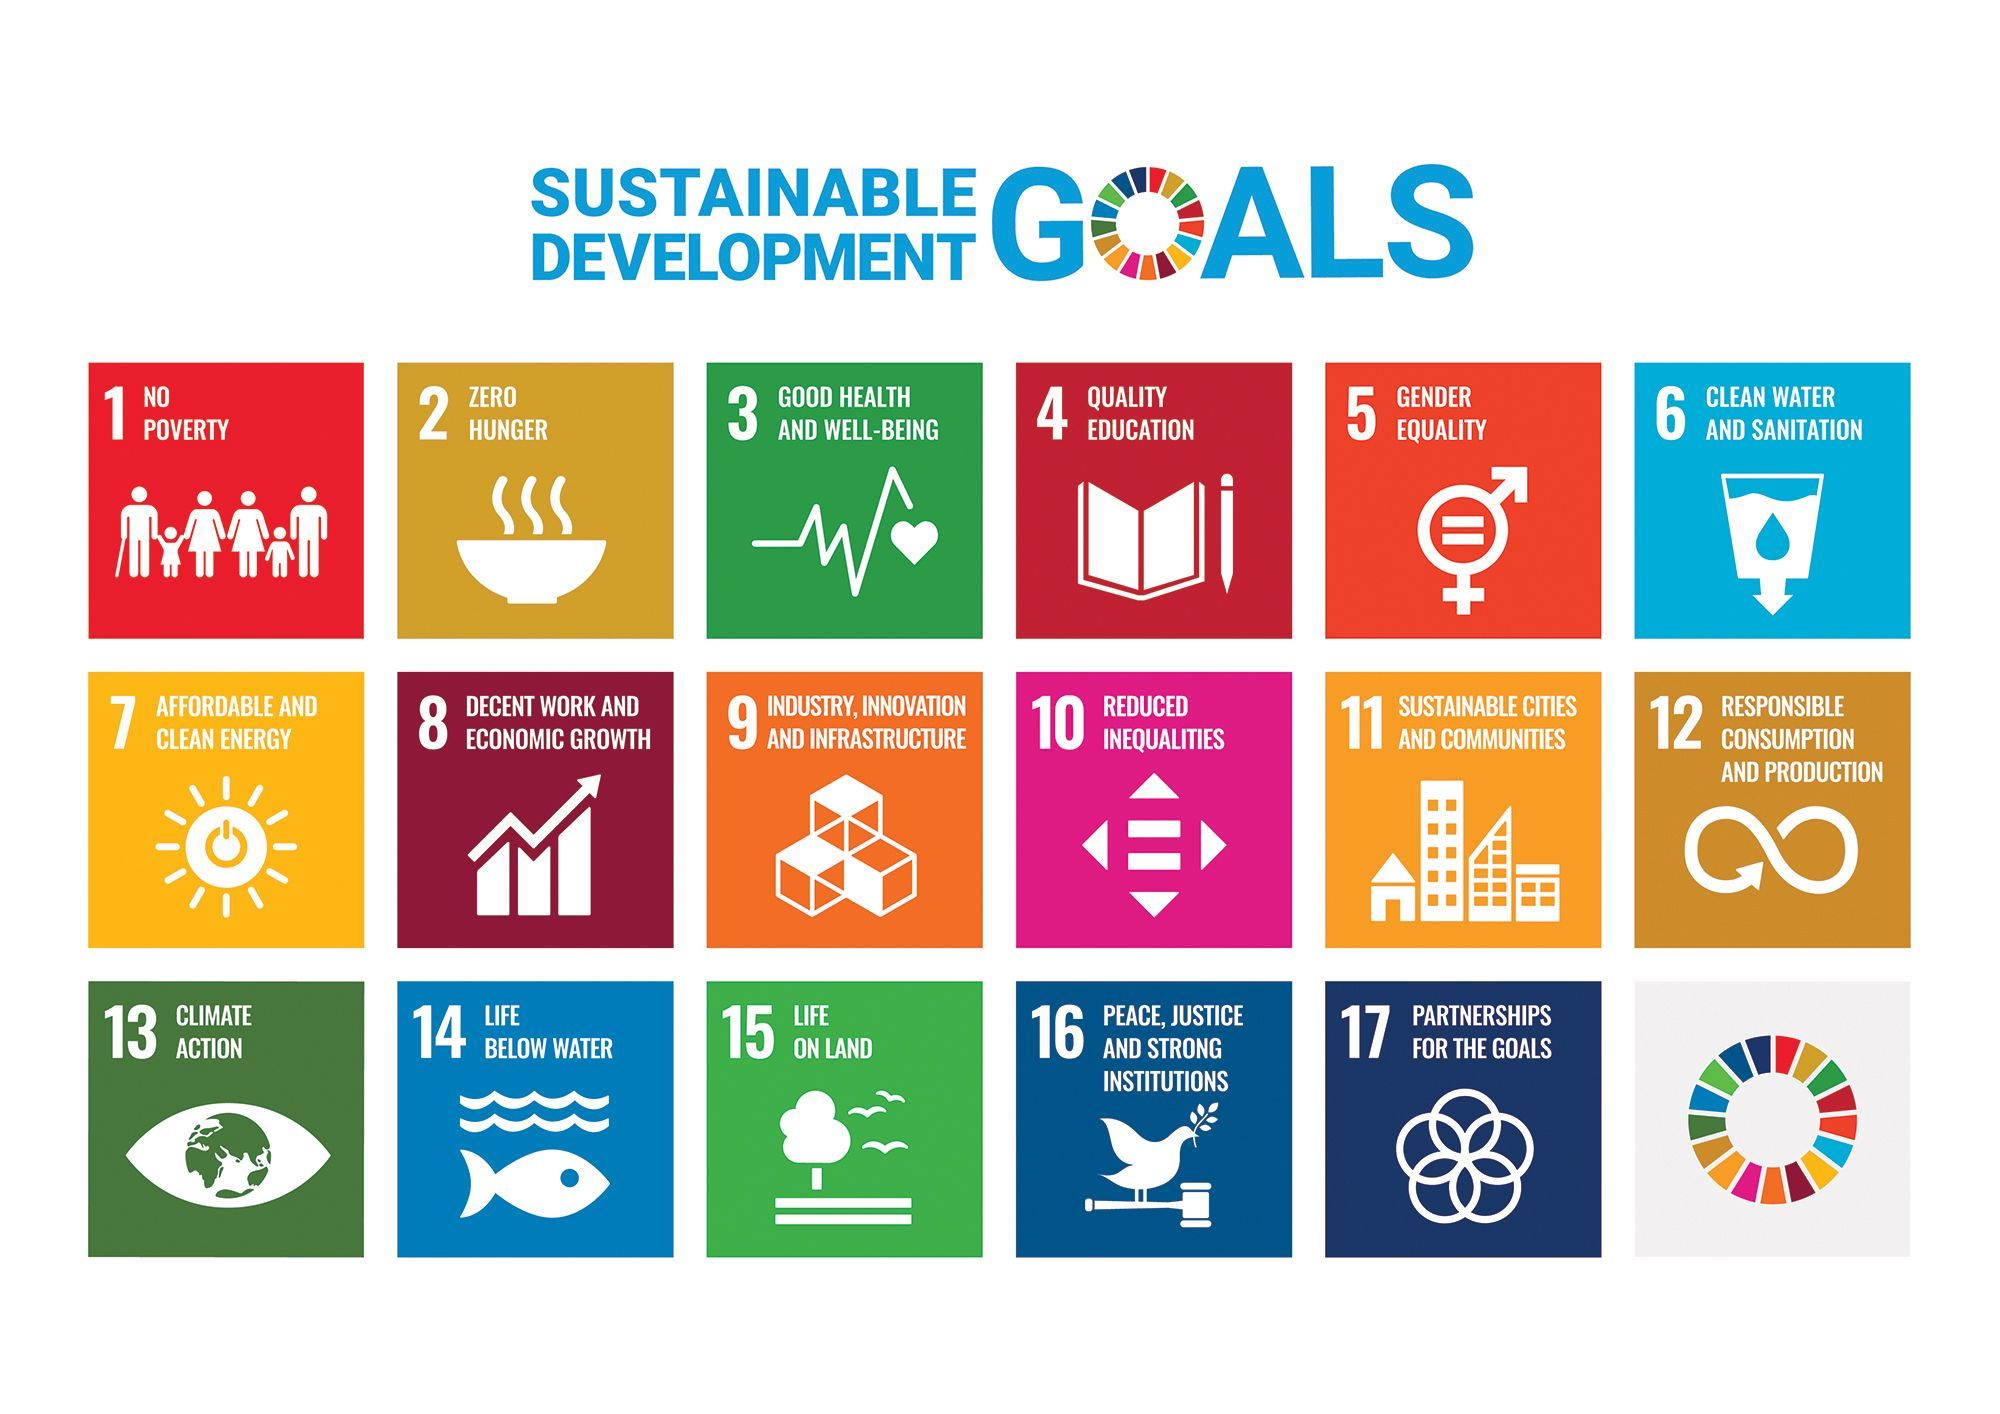 The 17 Sustainable Development Goals (SDGs) are an urgent call for action at the heart of the 2030 Agenda for Sustainable Development, which was adopted by all United Nations Member States (including NZ) in 2015